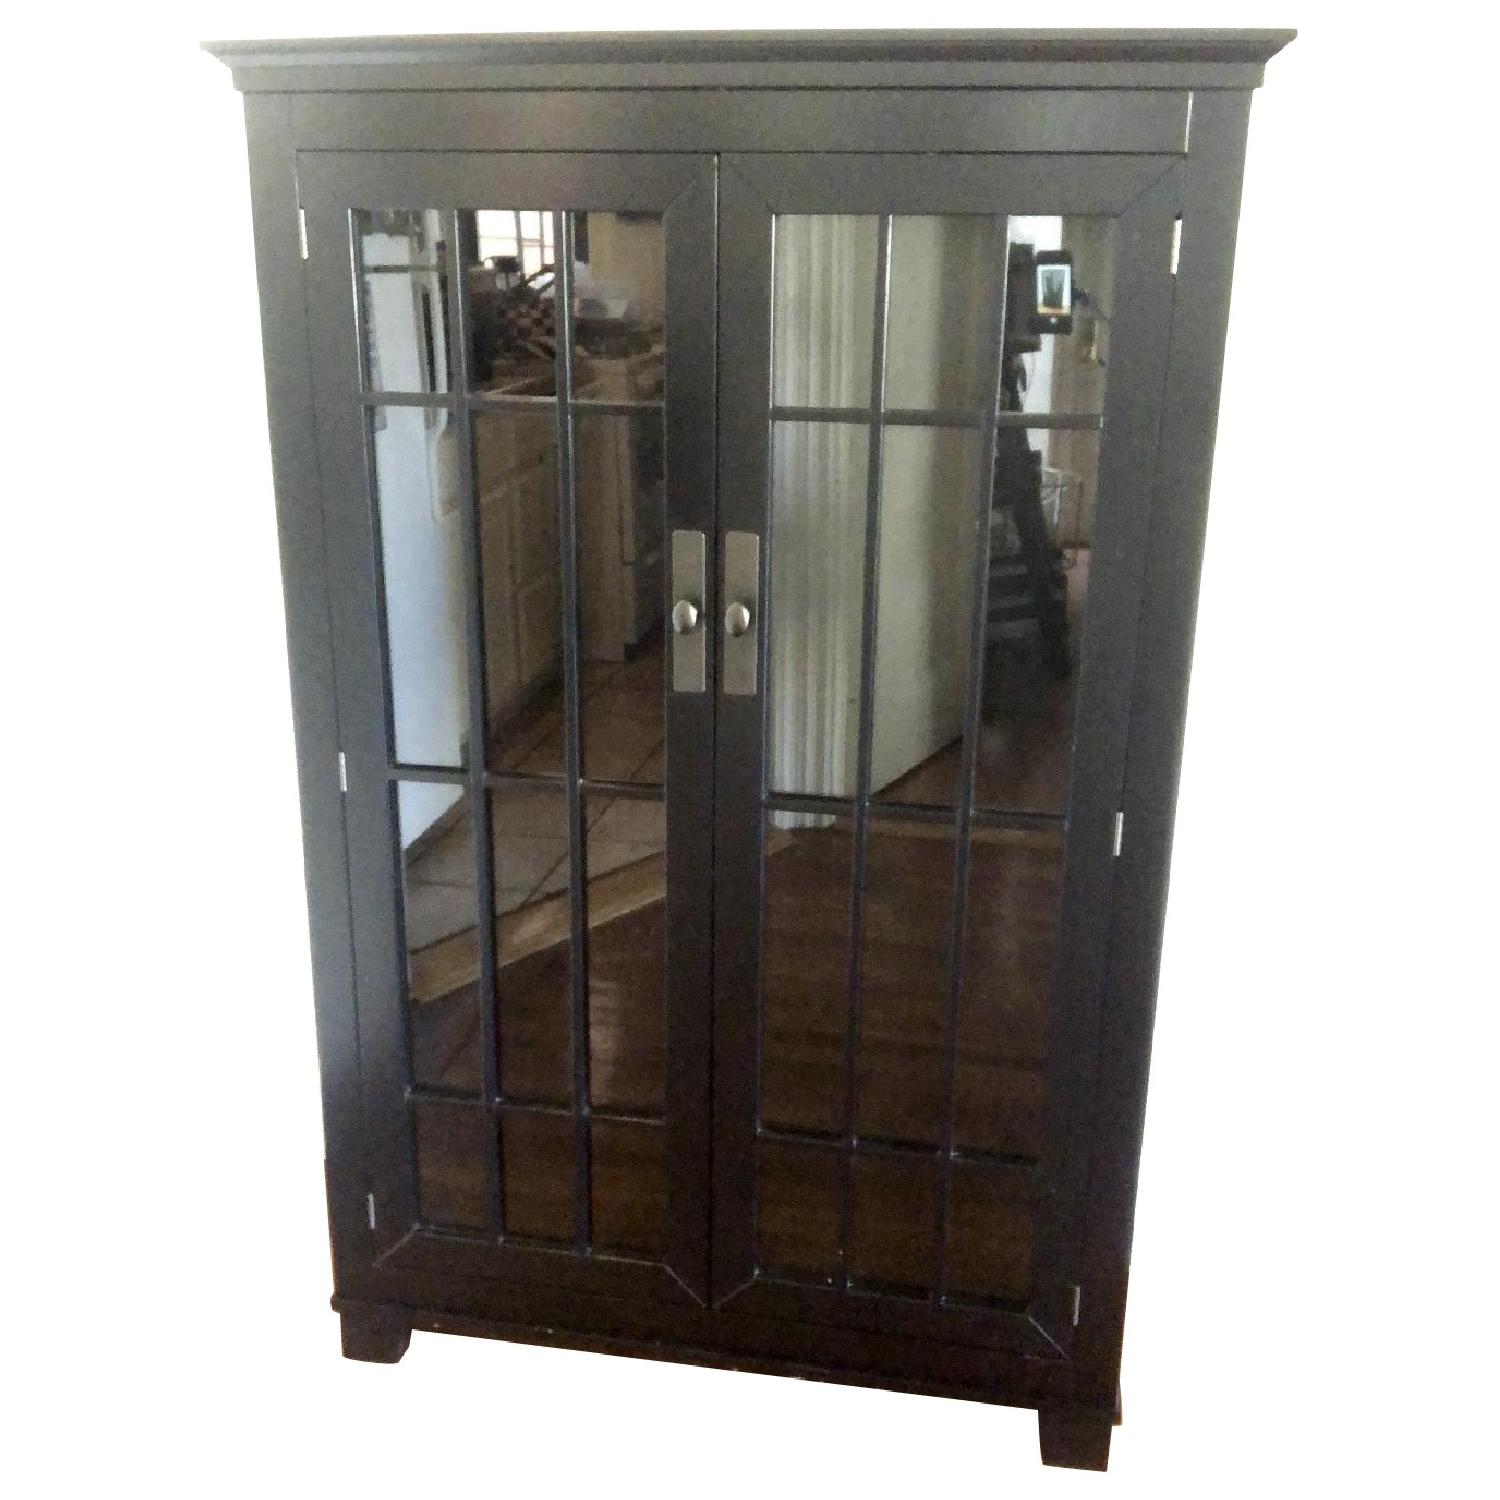 Crate & Barrel Black Storage Cabinet